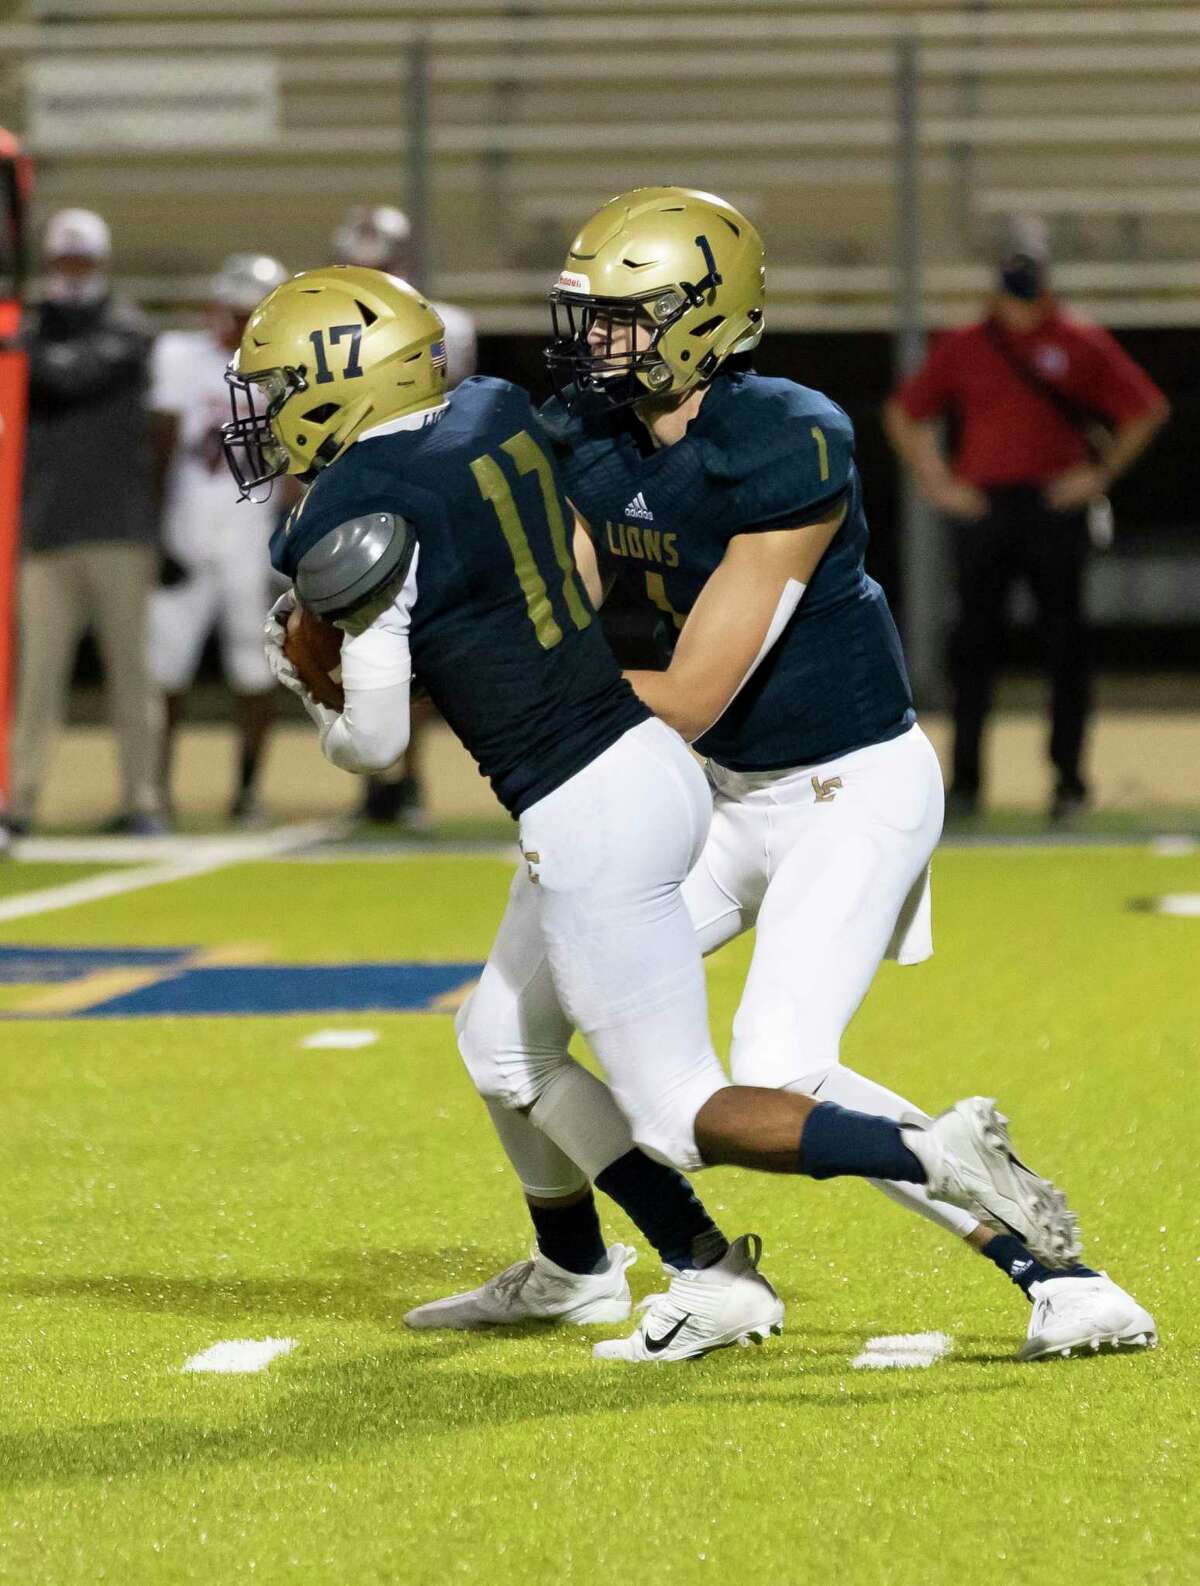 Lake Creek tailback Justin Freeney (17) was named to the District 10-5A (Div. II) First Team.